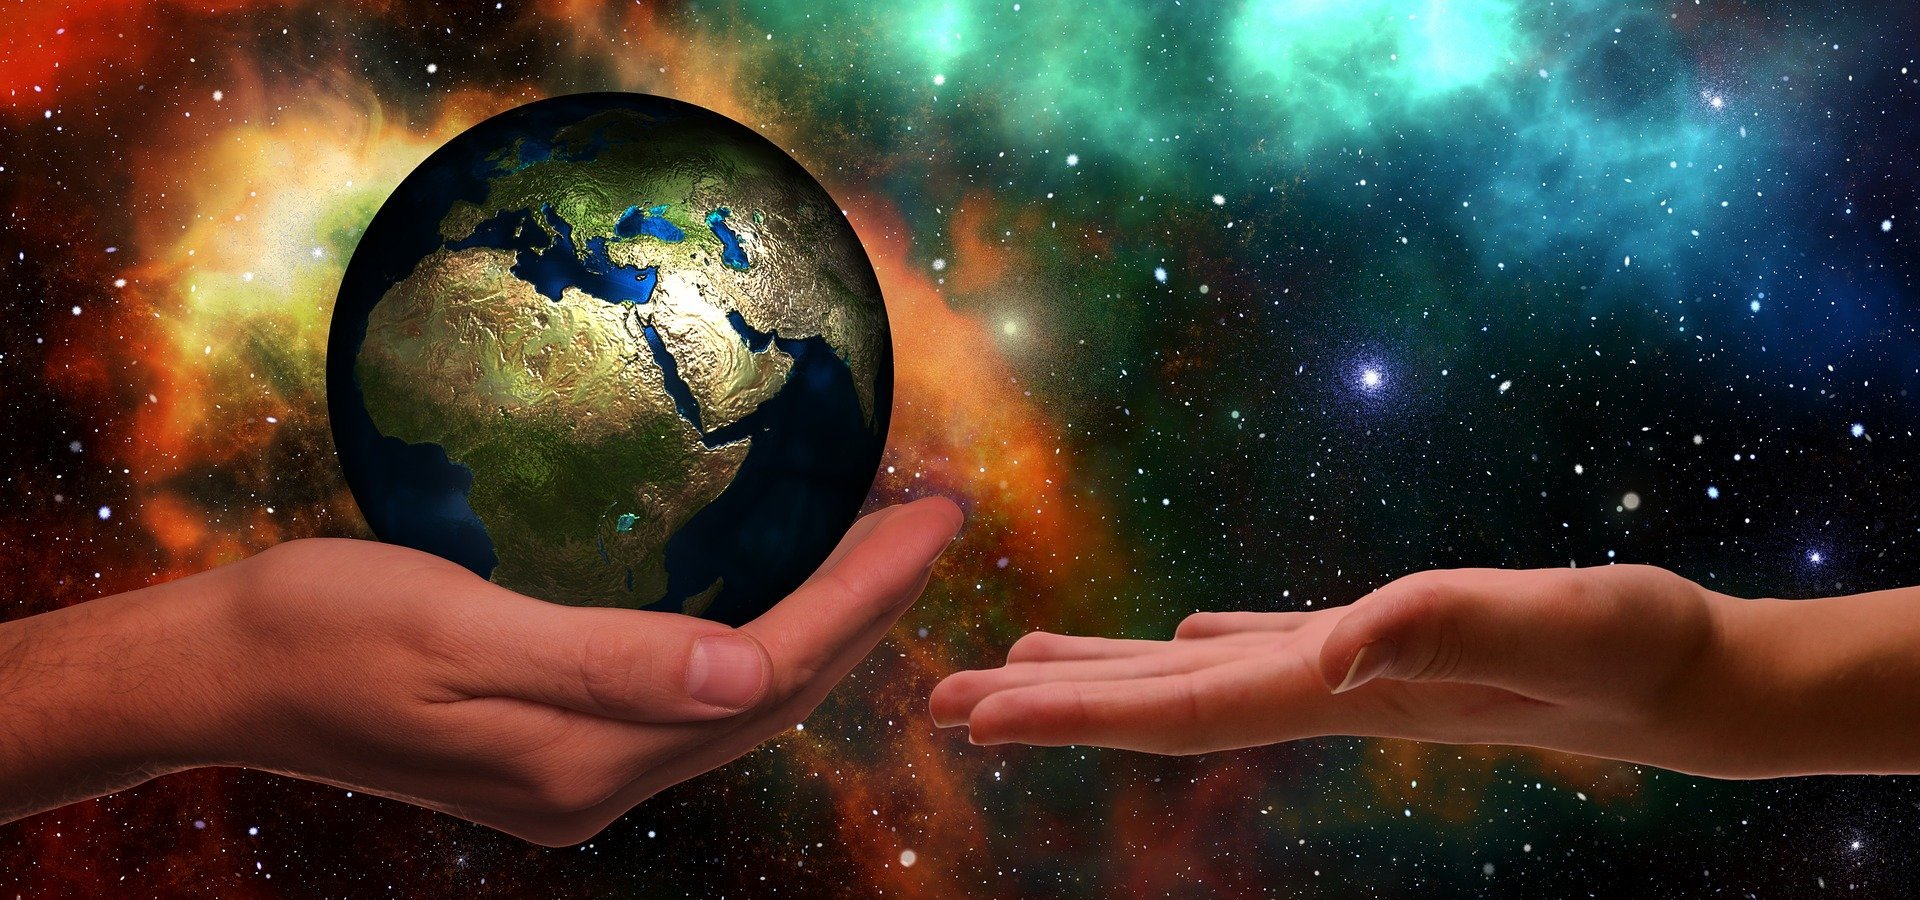 Hands passing the earth